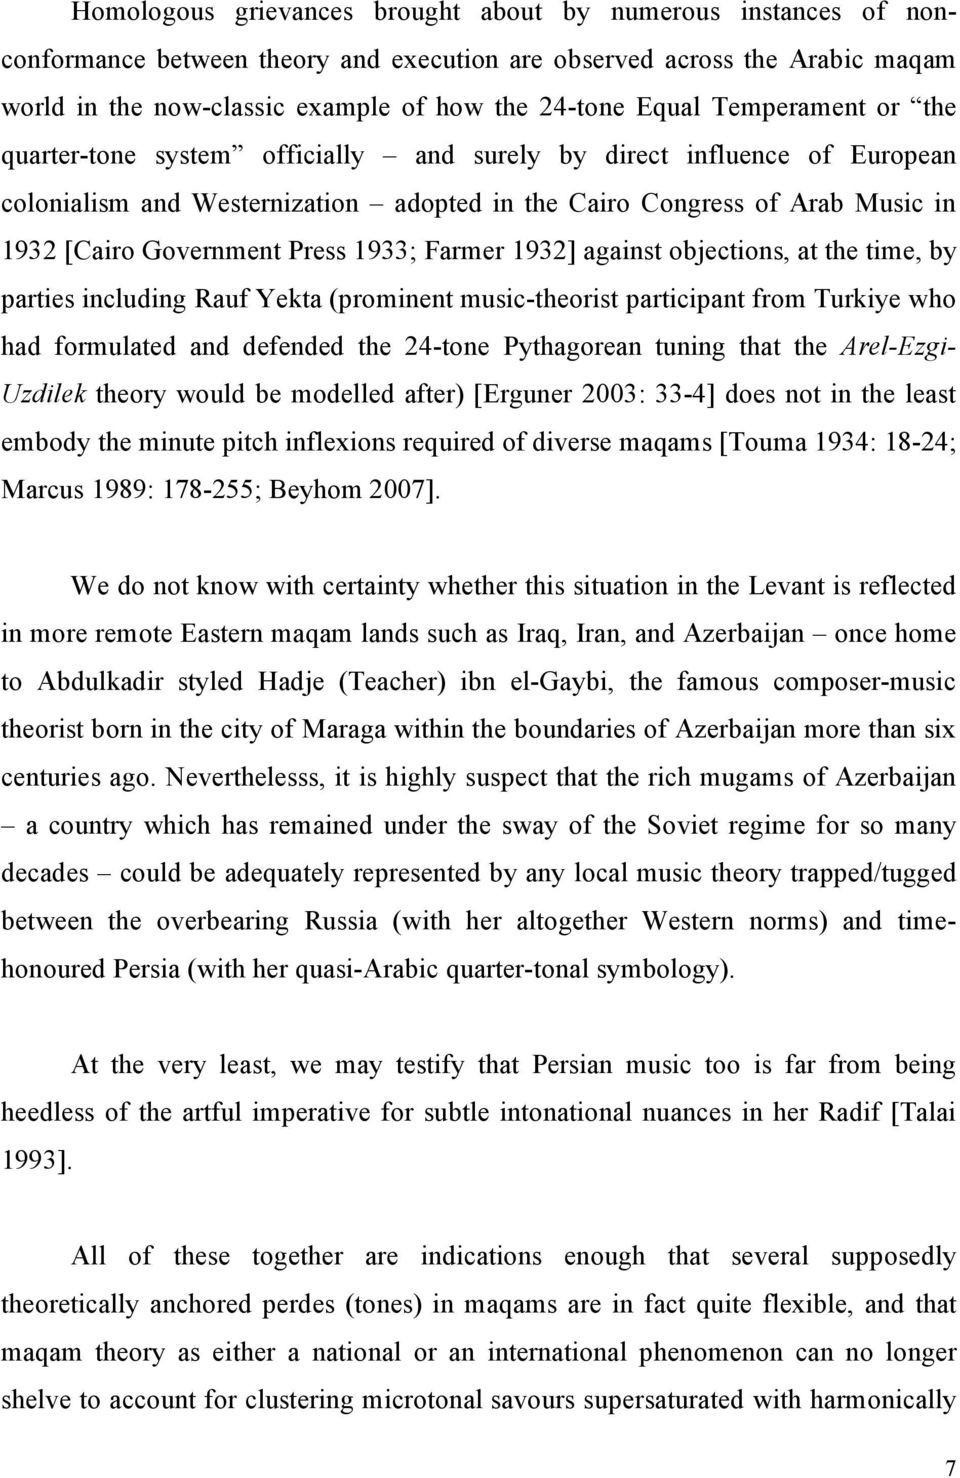 1933; Farmer 1932] against objections, at the time, by parties including Rauf Yekta (prominent music-theorist participant from Turkiye who had formulated and defended the 24-tone Pythagorean tuning